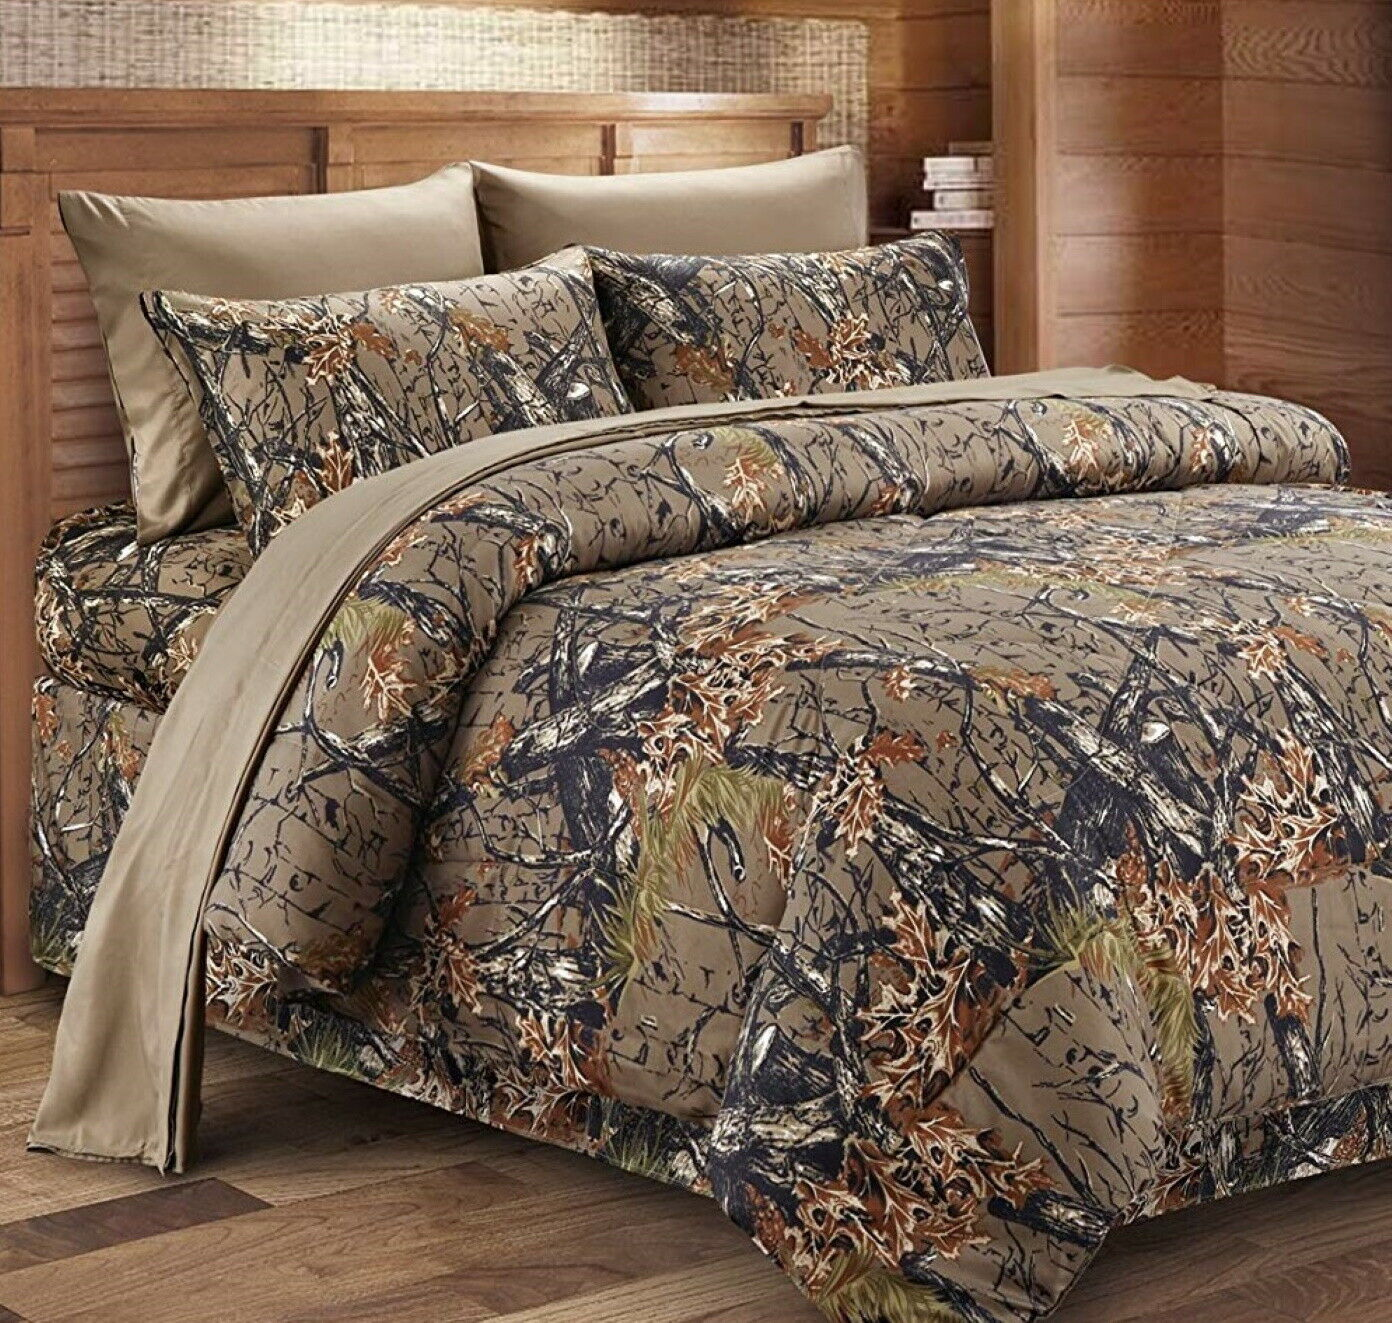 7 Pc Natural Gray Camo Comforter Sheet Set King Size Bedding Camouflage Woods For Sale Online Ebay